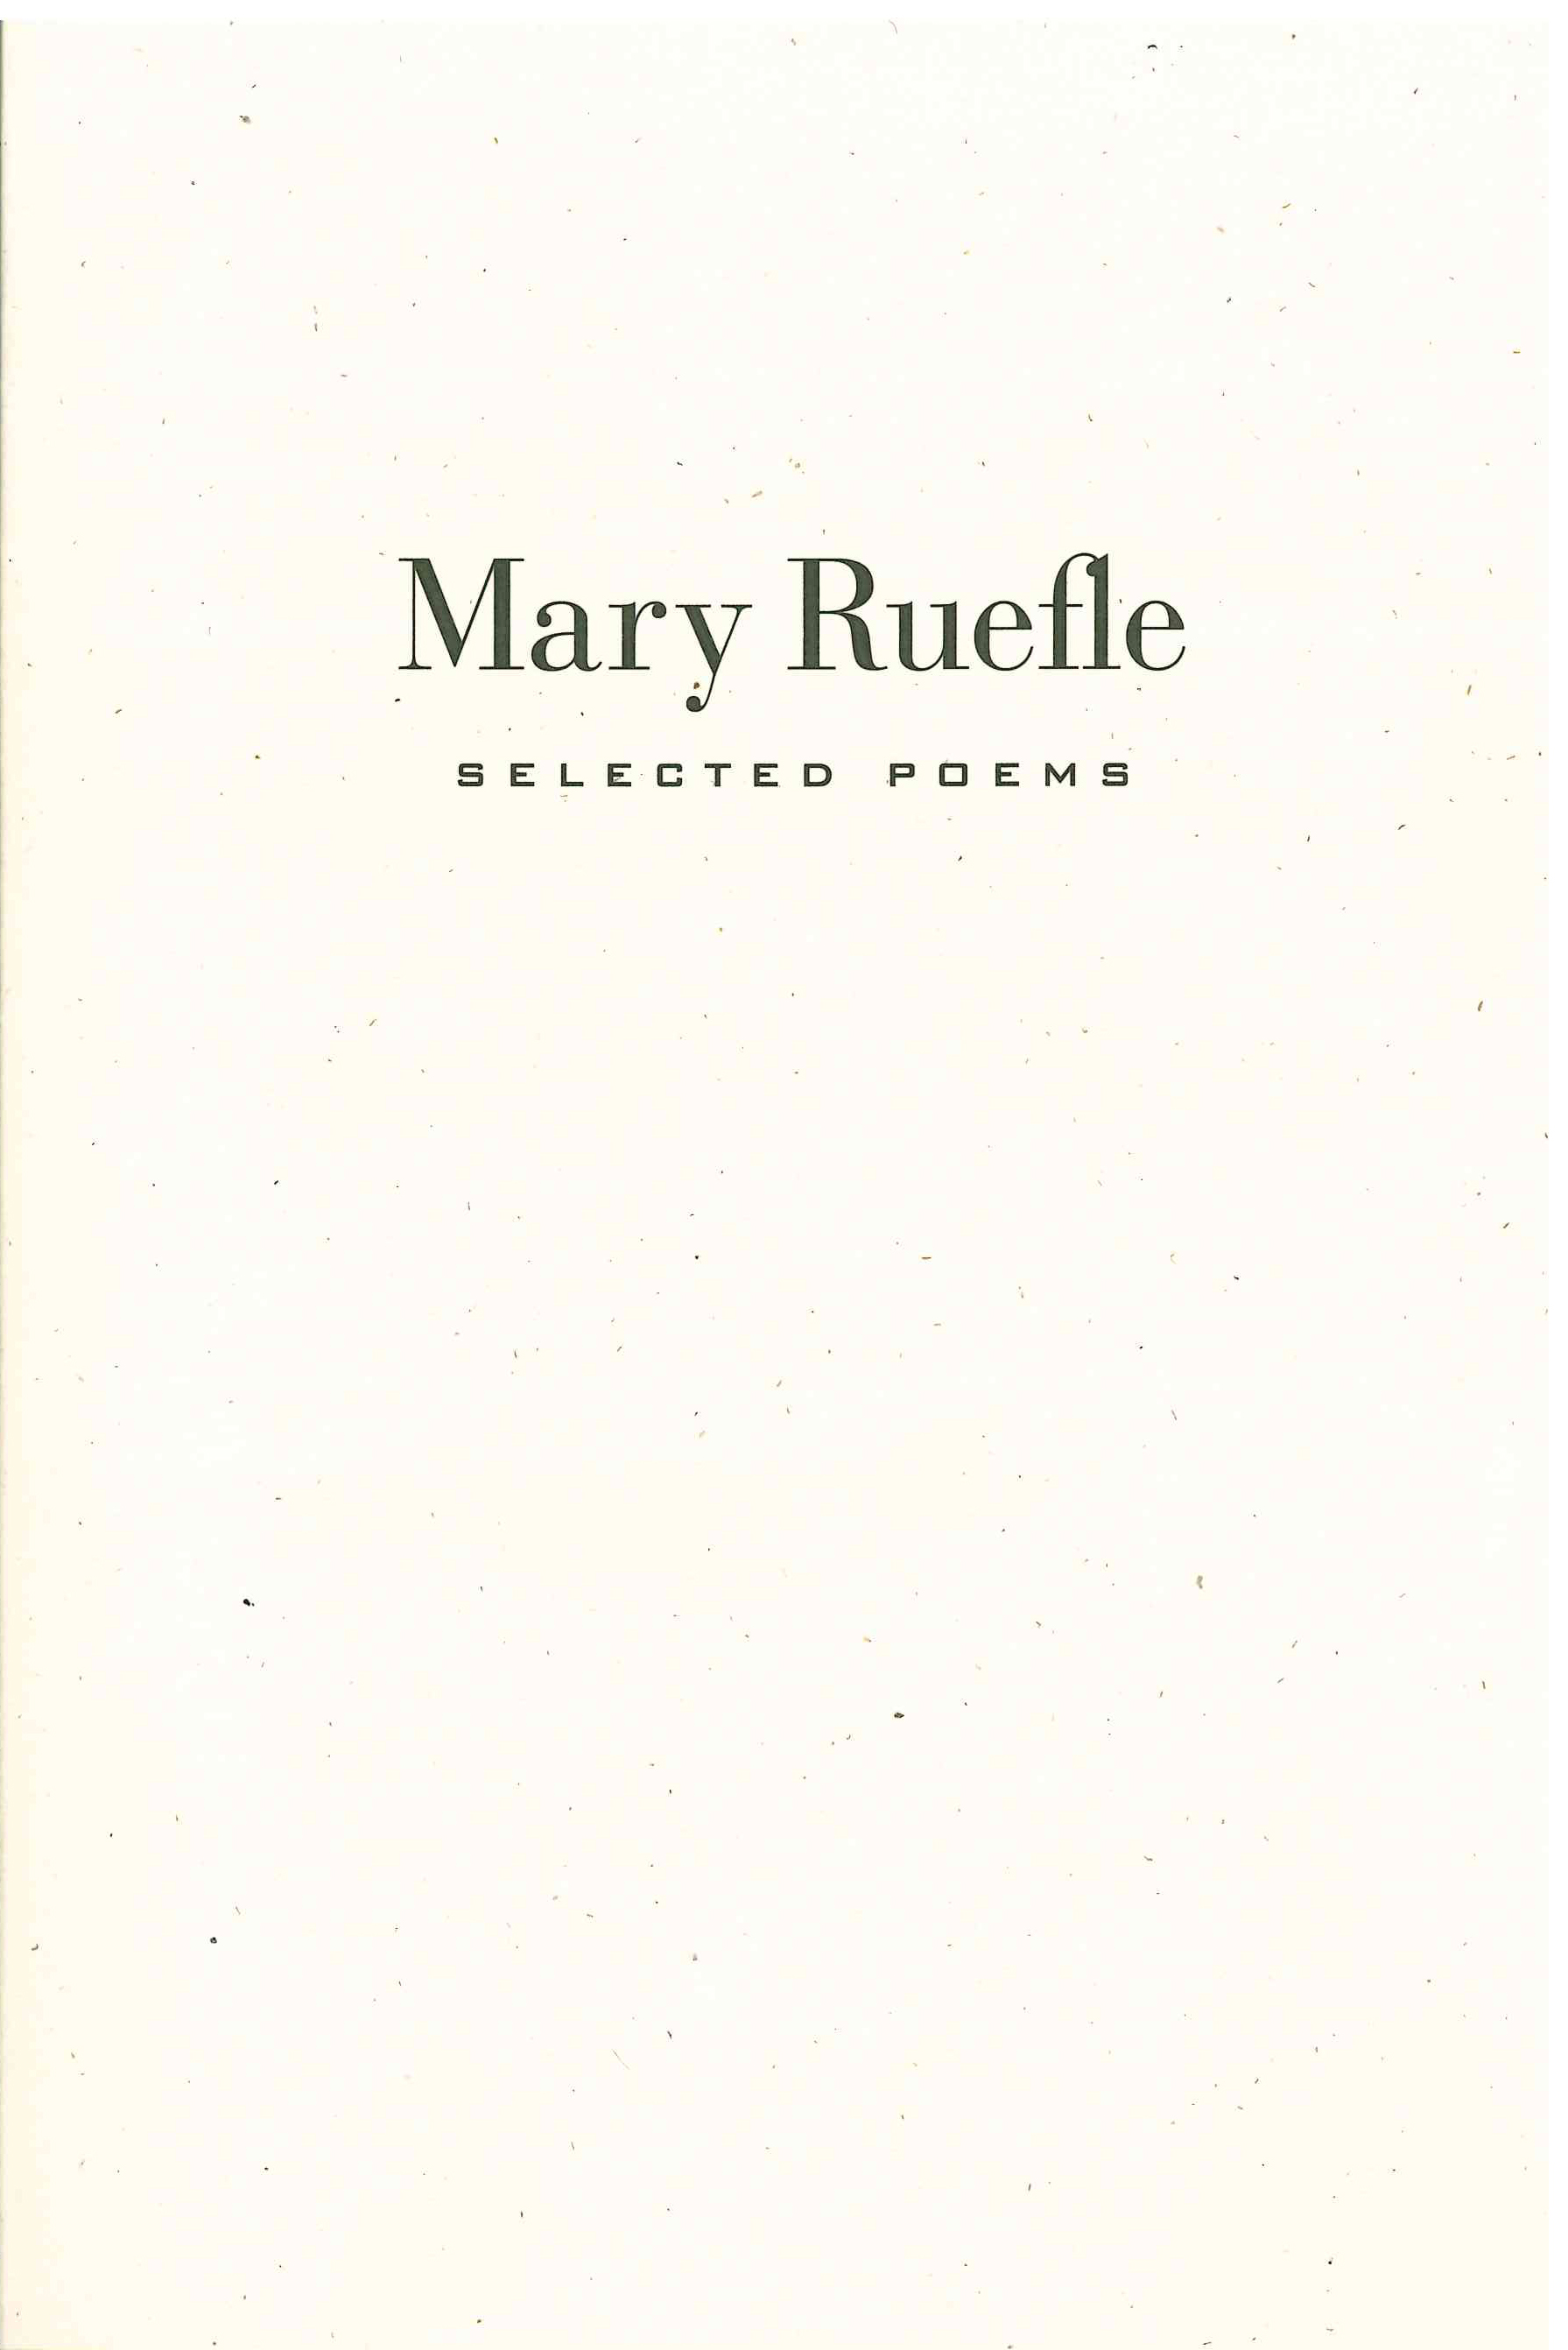 Selected Poems, Mary Ruefle